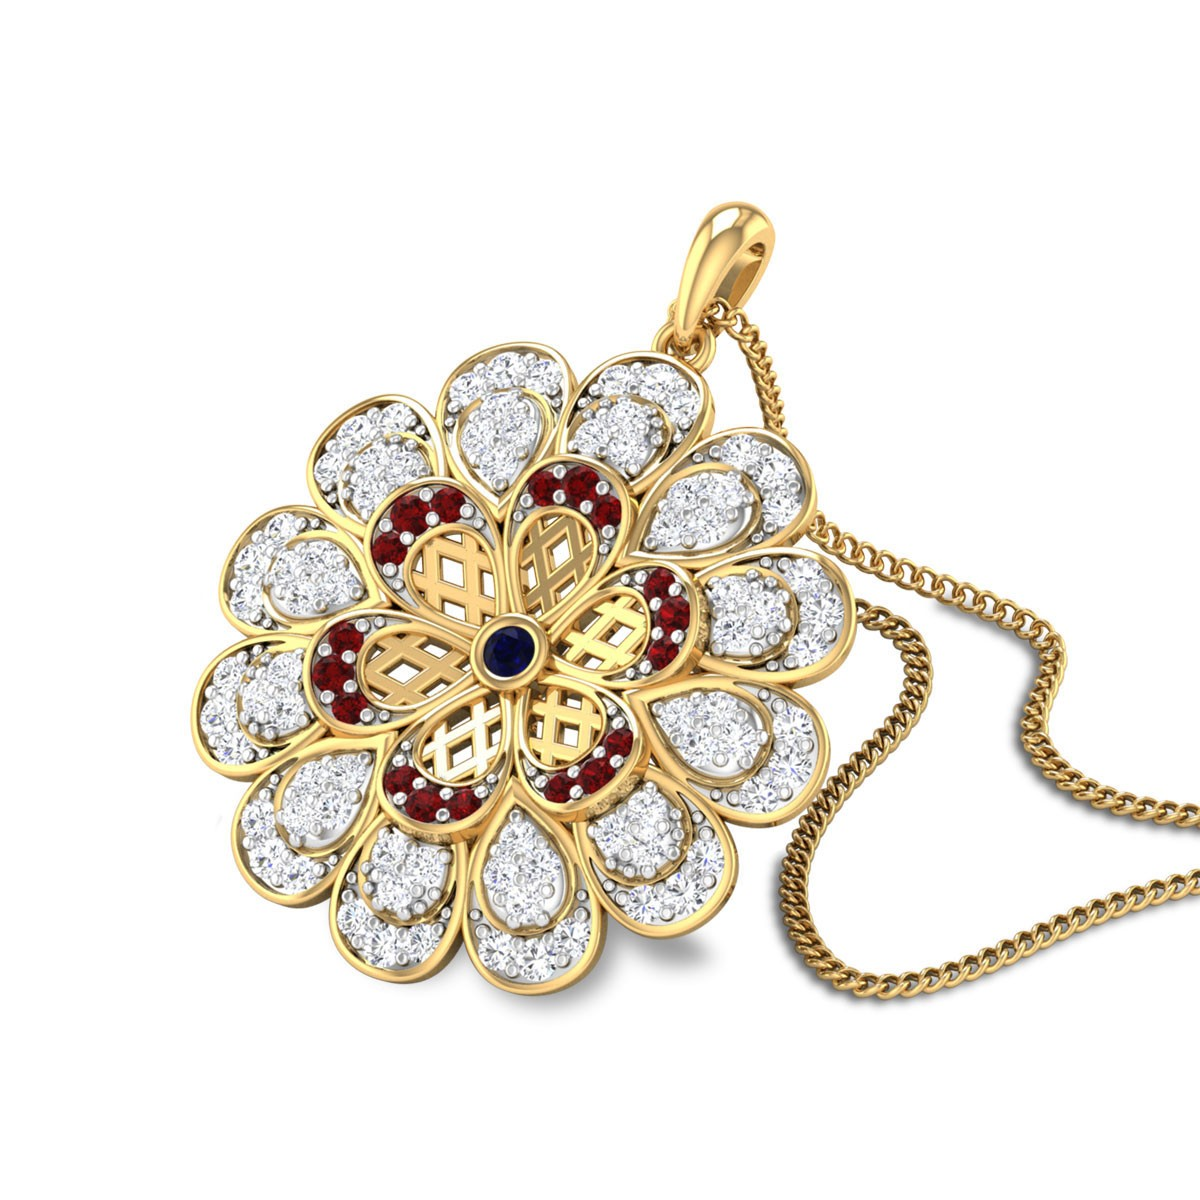 Romilda Diamond and Ruby Pendant